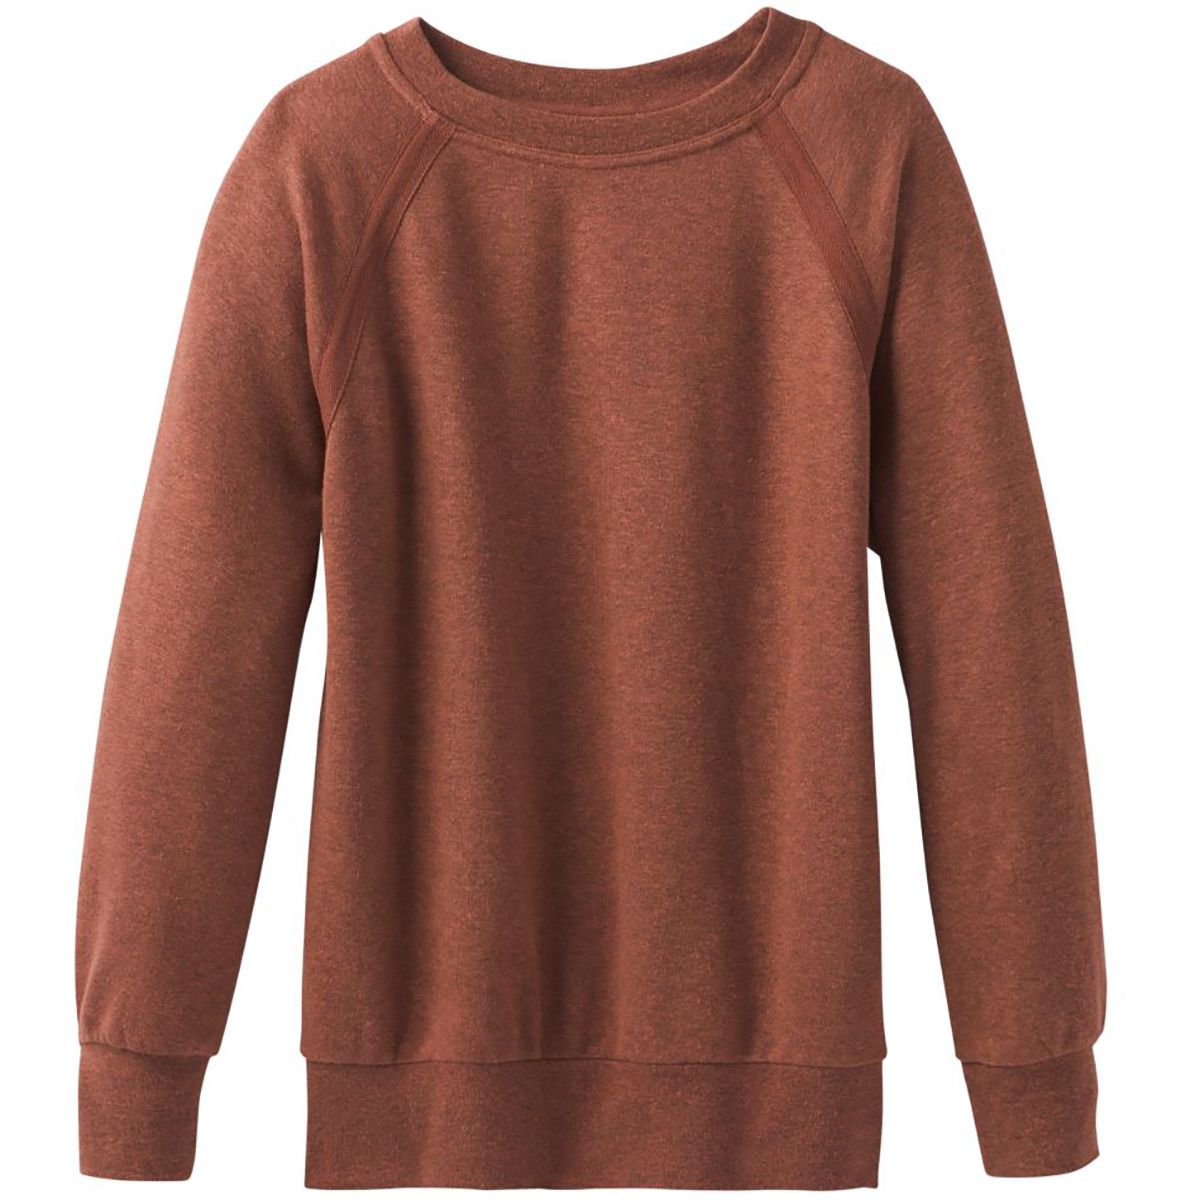 Prana Damen Cozy Up Sweatshirt (Größe L, Rot) | Pullover > Damen